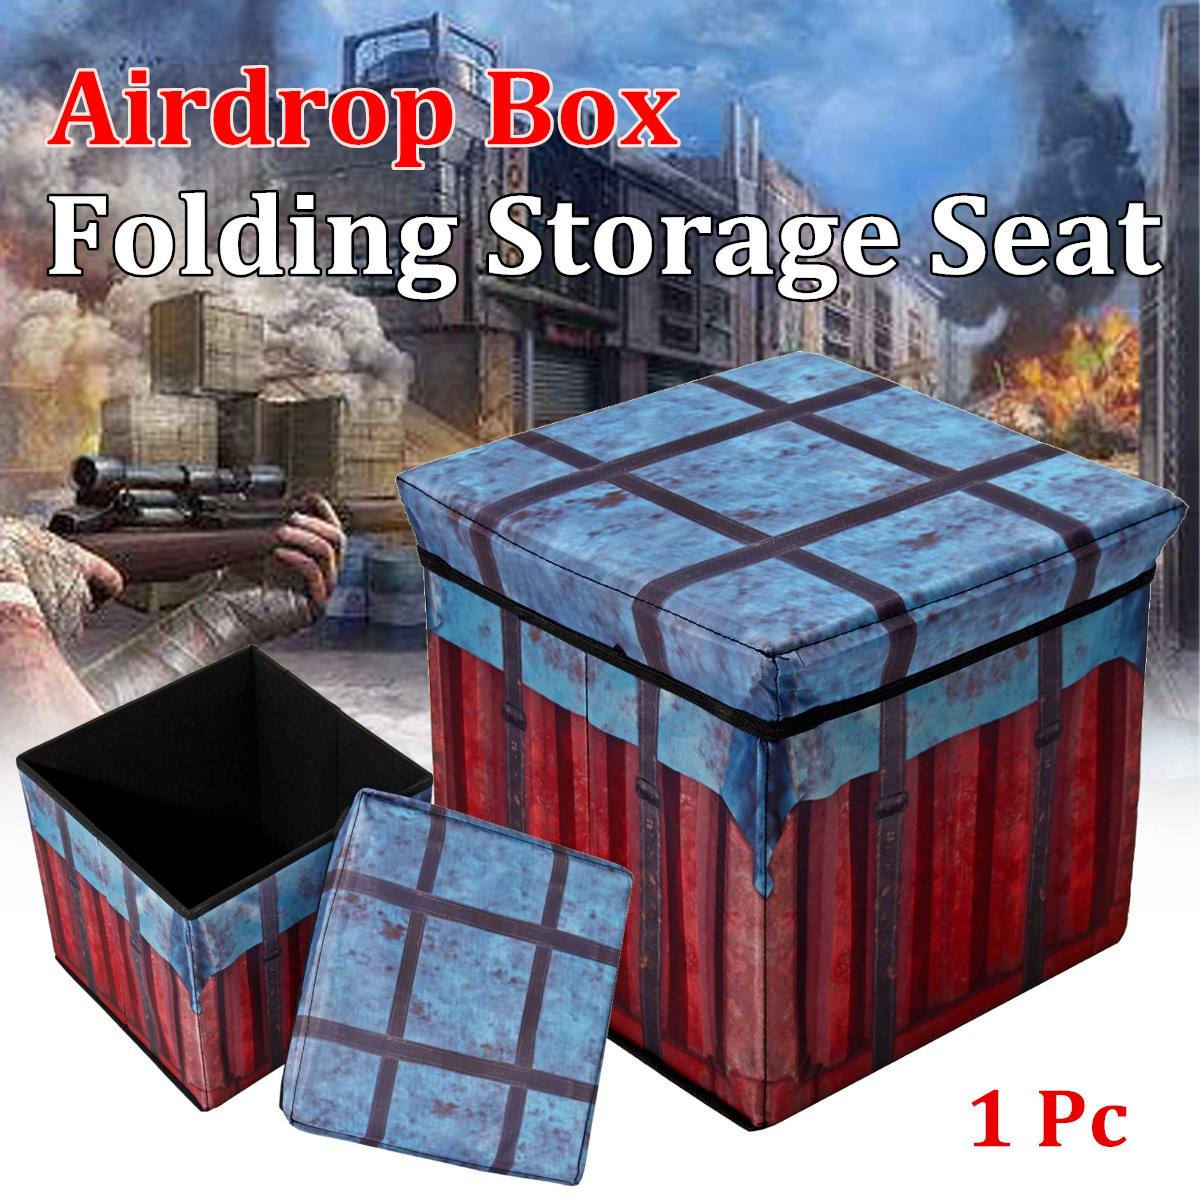 Home Footstool Sofa Ottomans Folding Footrest Seat Lounge Large Capacity Storage Box For The Jedi Survival Big Escape Air BoxesHome Footstool Sofa Ottomans Folding Footrest Seat Lounge Large Capacity Storage Box For The Jedi Survival Big Escape Air Boxes